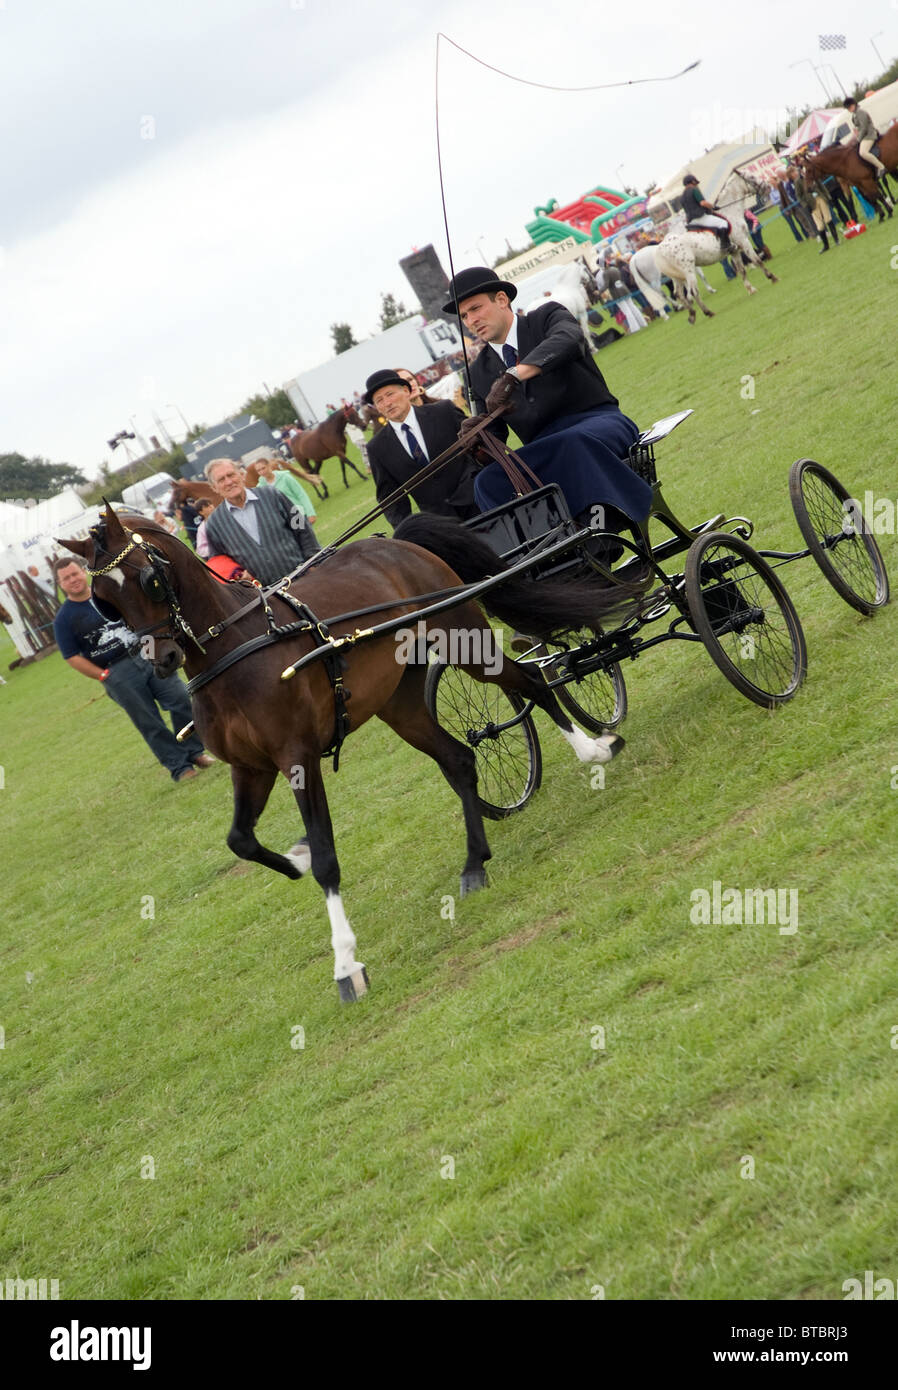 hackney carriage pony at the orsett county show - Stock Image